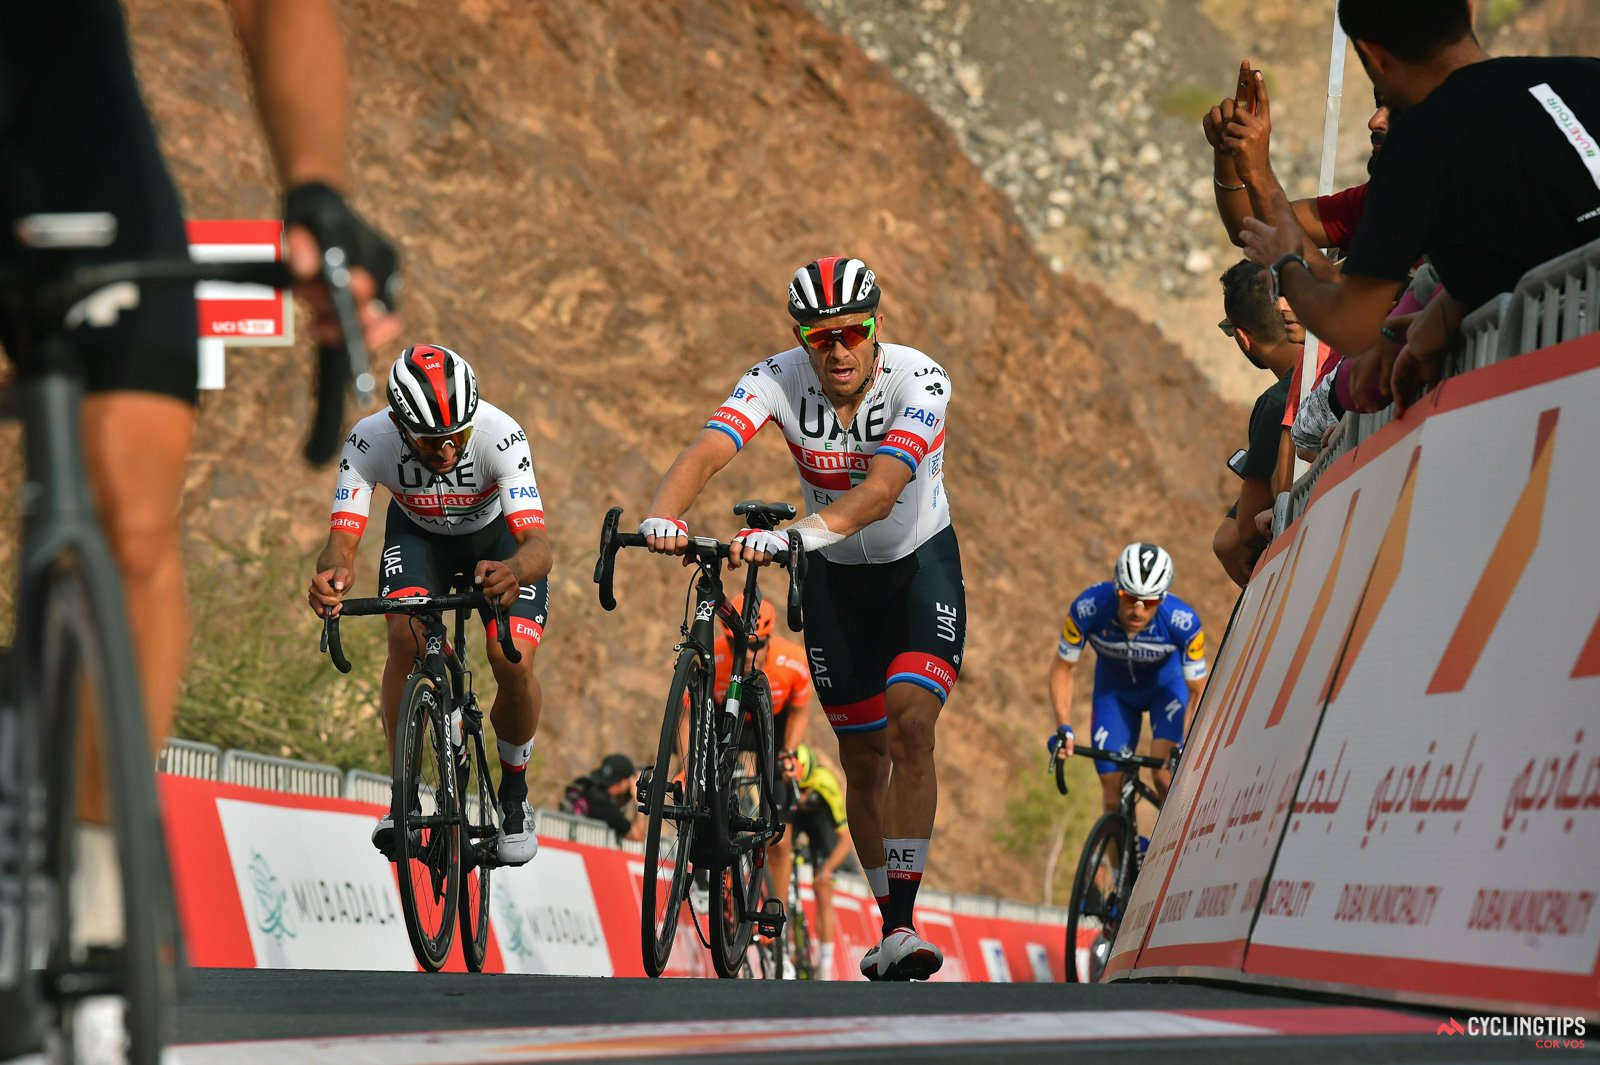 Alexander Kristoff tamponato all'UAE Tour